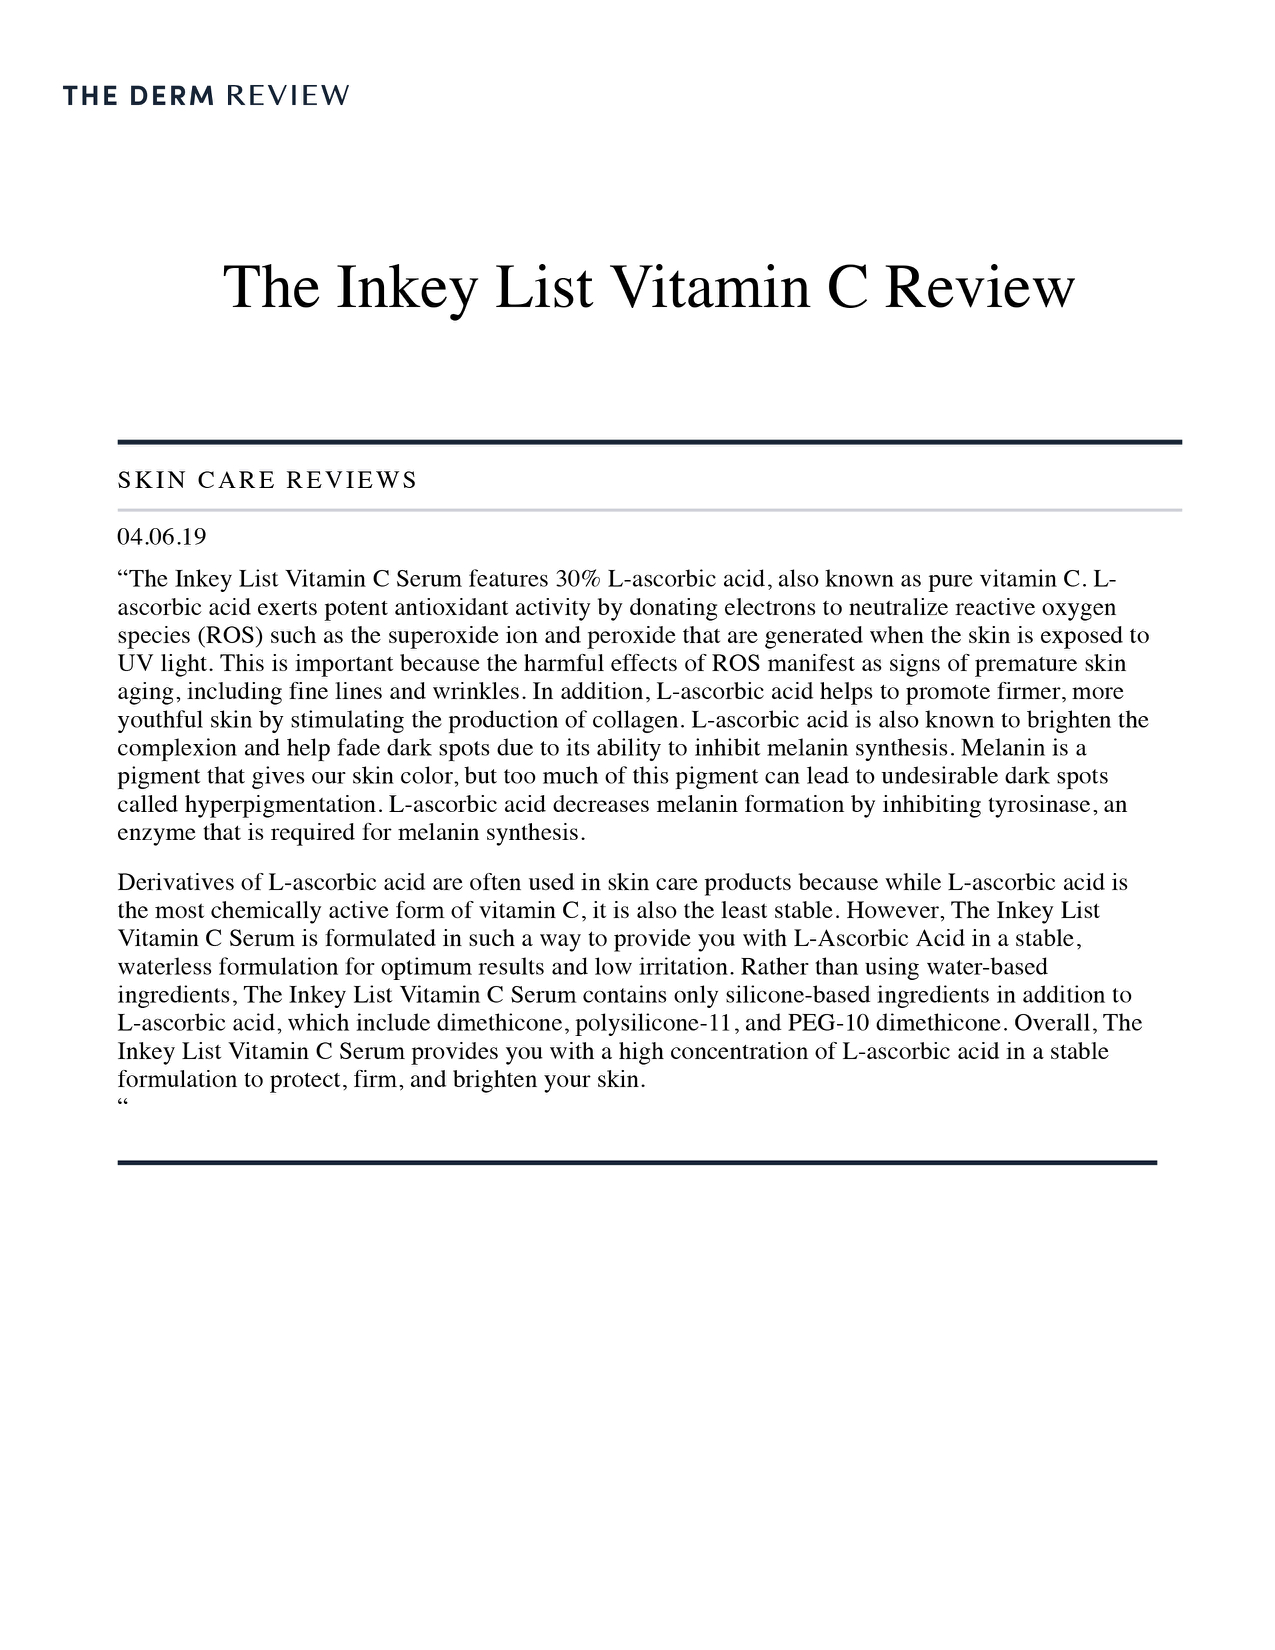 The InKey List featured in  The Derm Review .